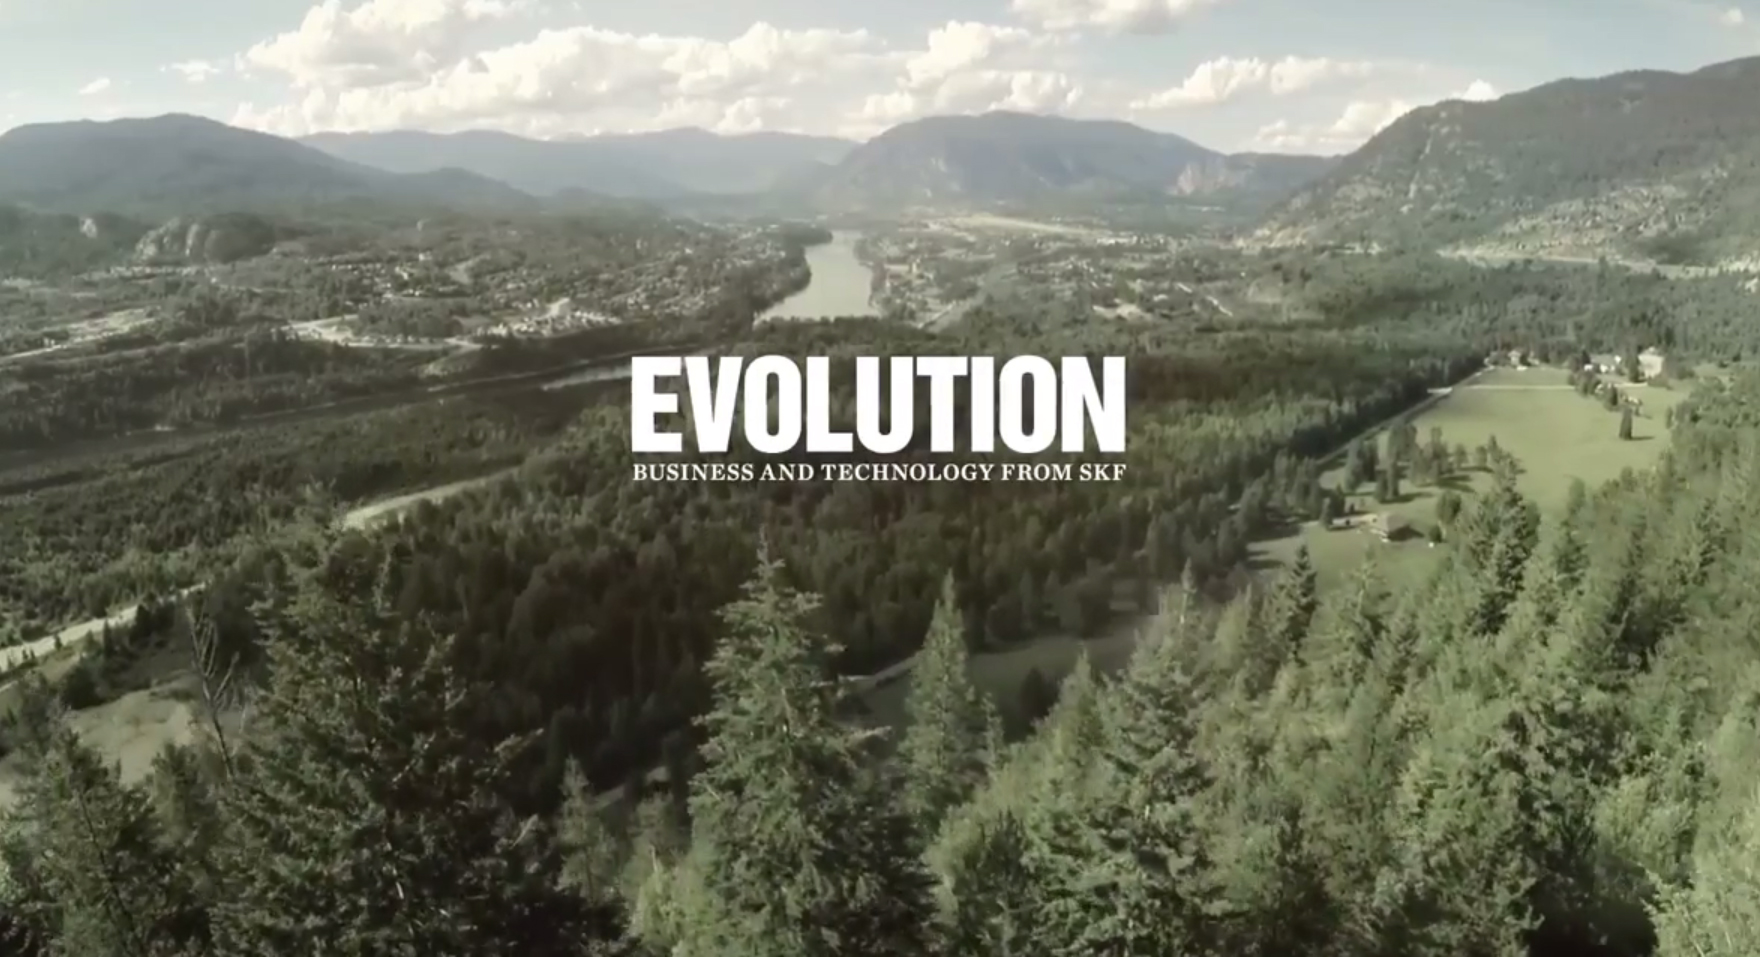 Evolution online – SKF technology and solutions around the world